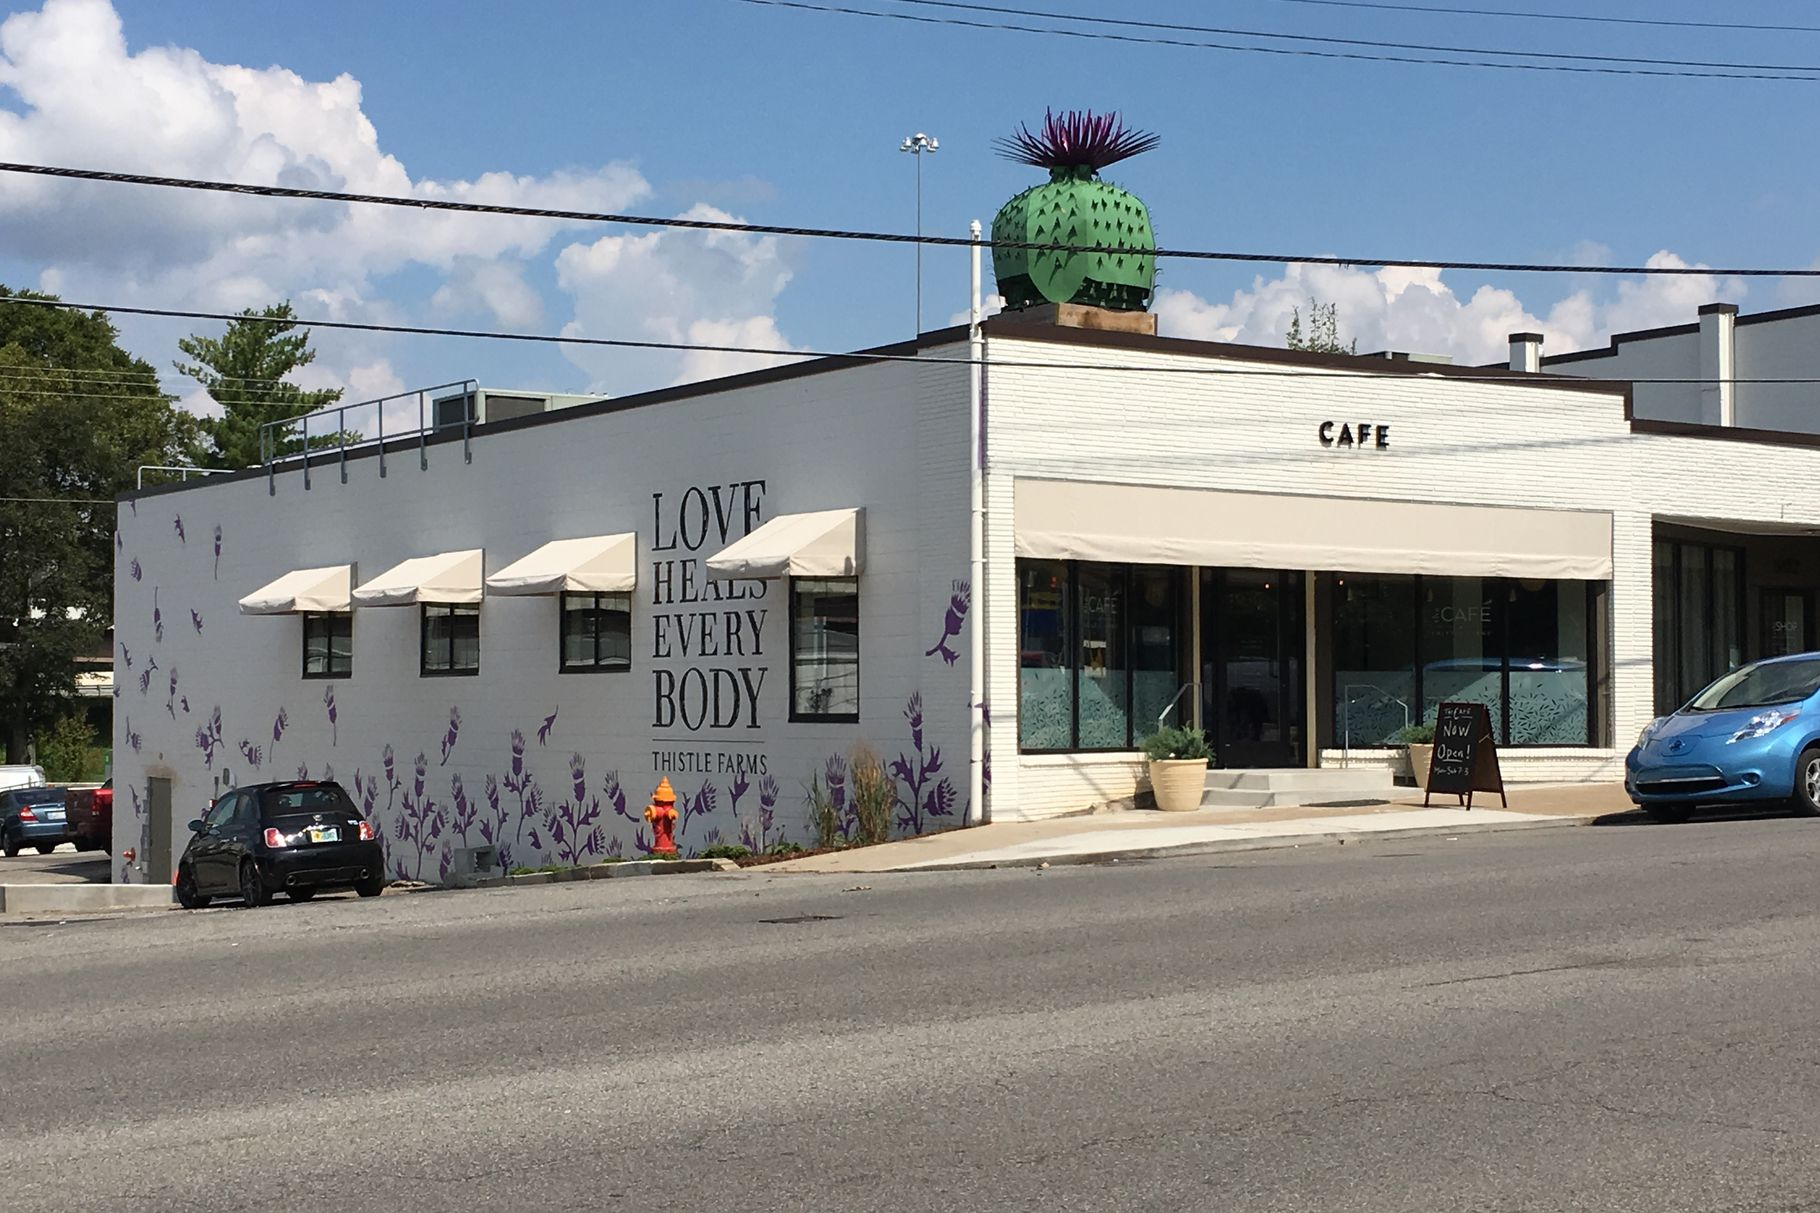 Nashville Eater    The Cafe at Thistle Farms Reopens After Monthslong Renovation   After a nearly eight months' long renovation,   The Cafe at Thistle Farms   reopened for business earlier this morning in West Nashville.